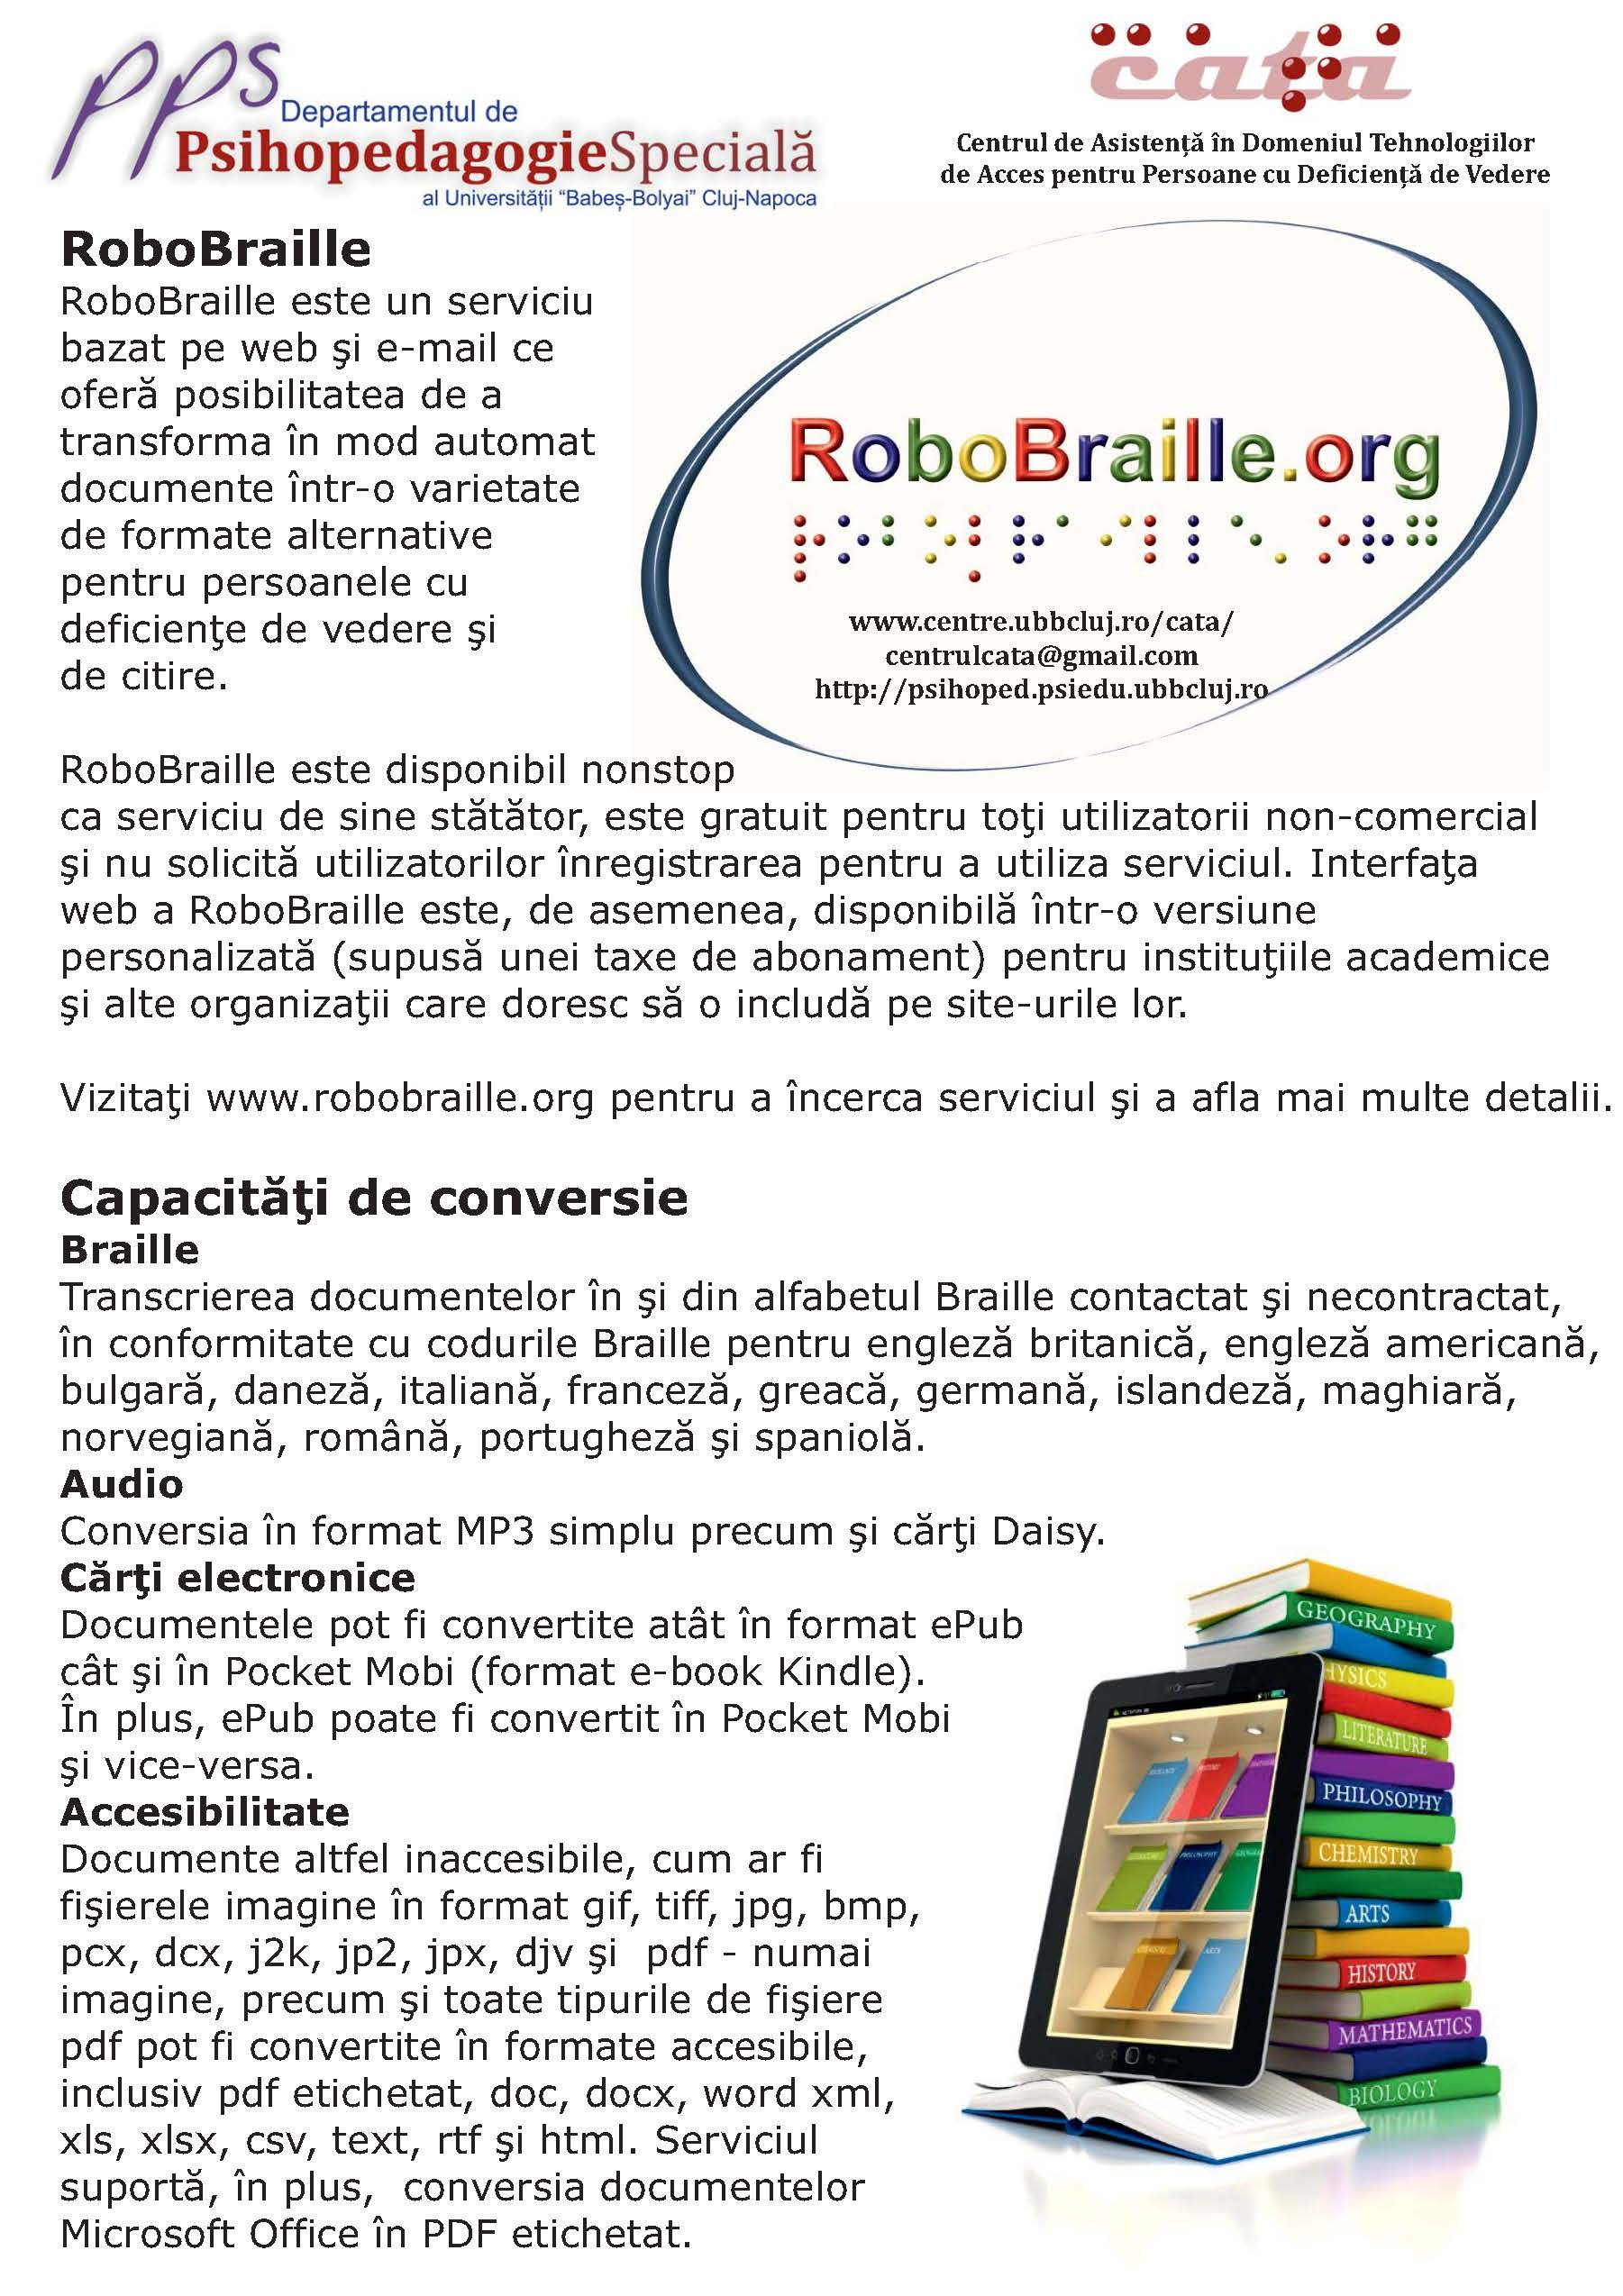 afis RoboBraille